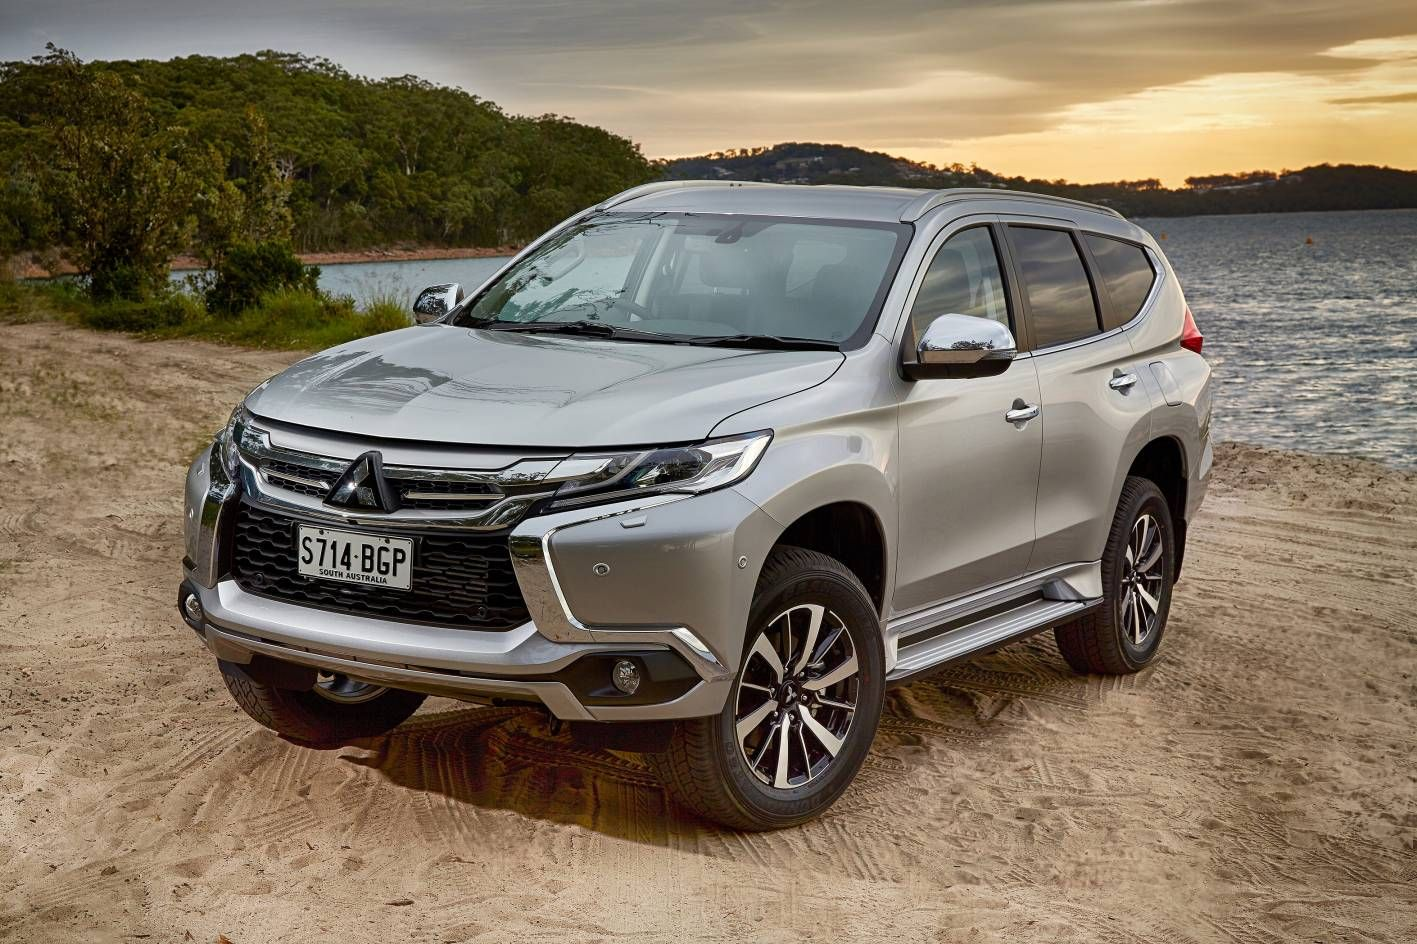 2017 mitsubishi pajero sport hd wallpapers | whesley | pinterest